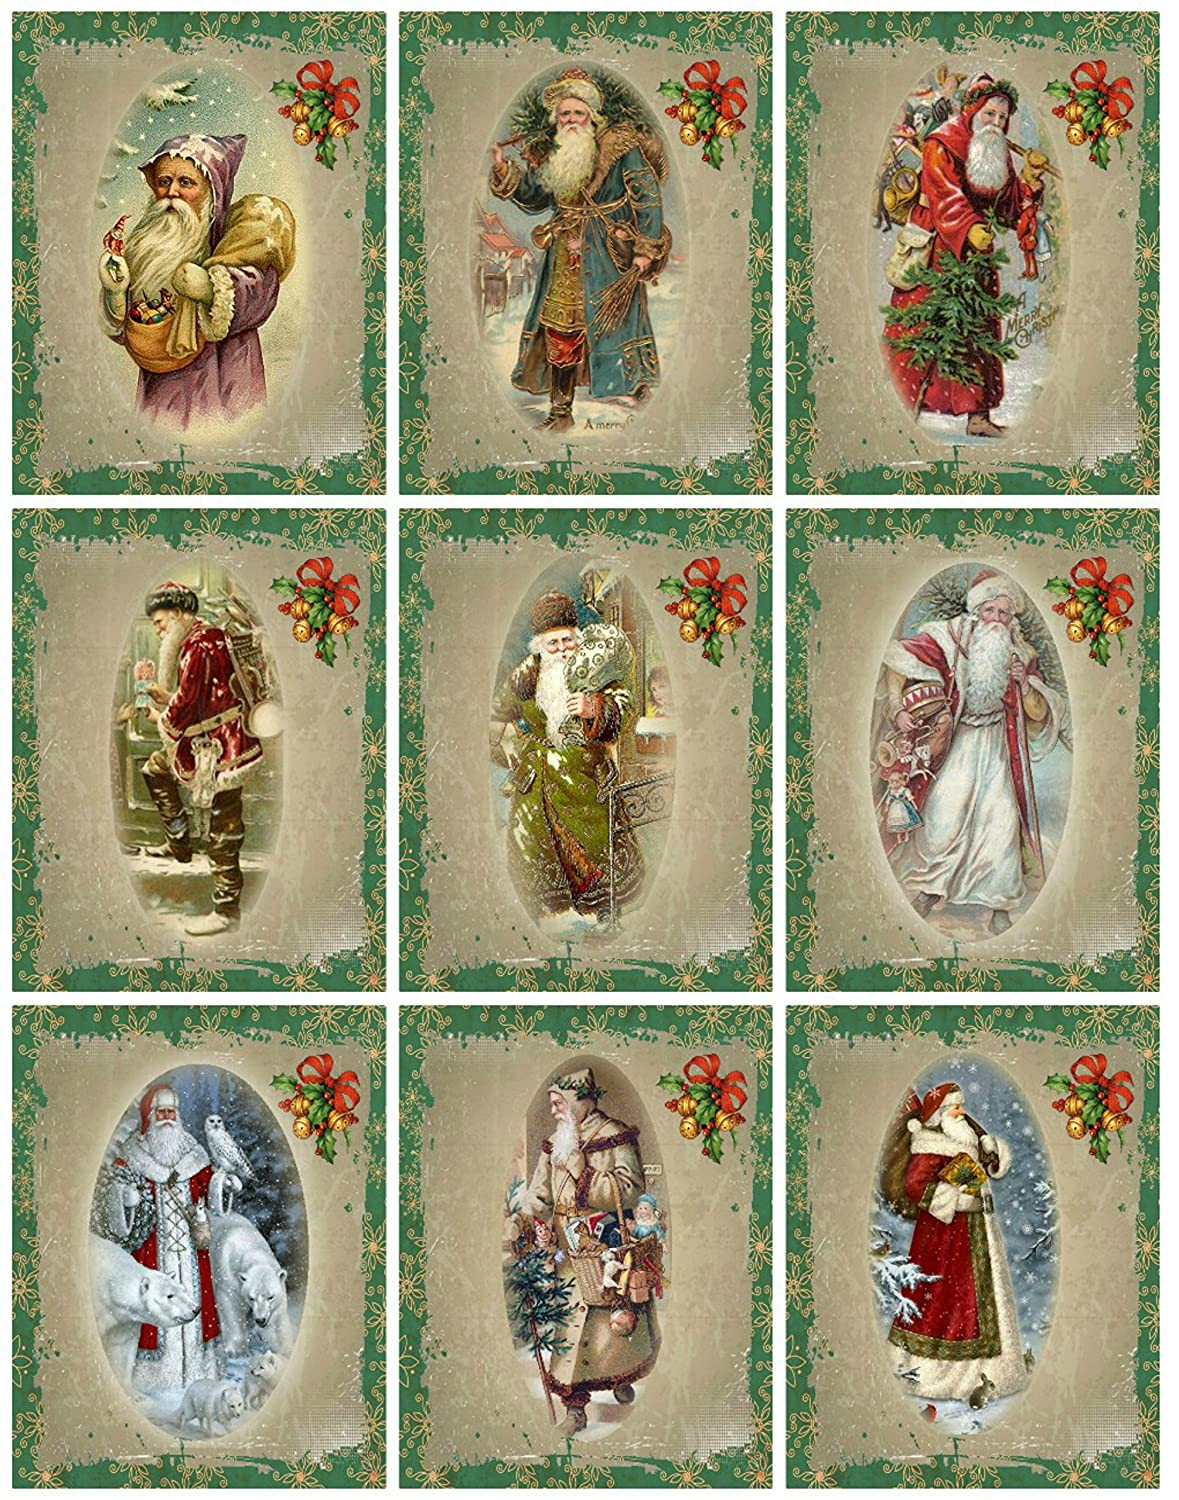 Victorian Images Vintage Santa Christmas Graphics Collage Sheet, Digital Scrapbooking, Prints, ATC, Gift Tags 8.5 x 11 Gift Tags 8.5 x 11 Paper Moon Media